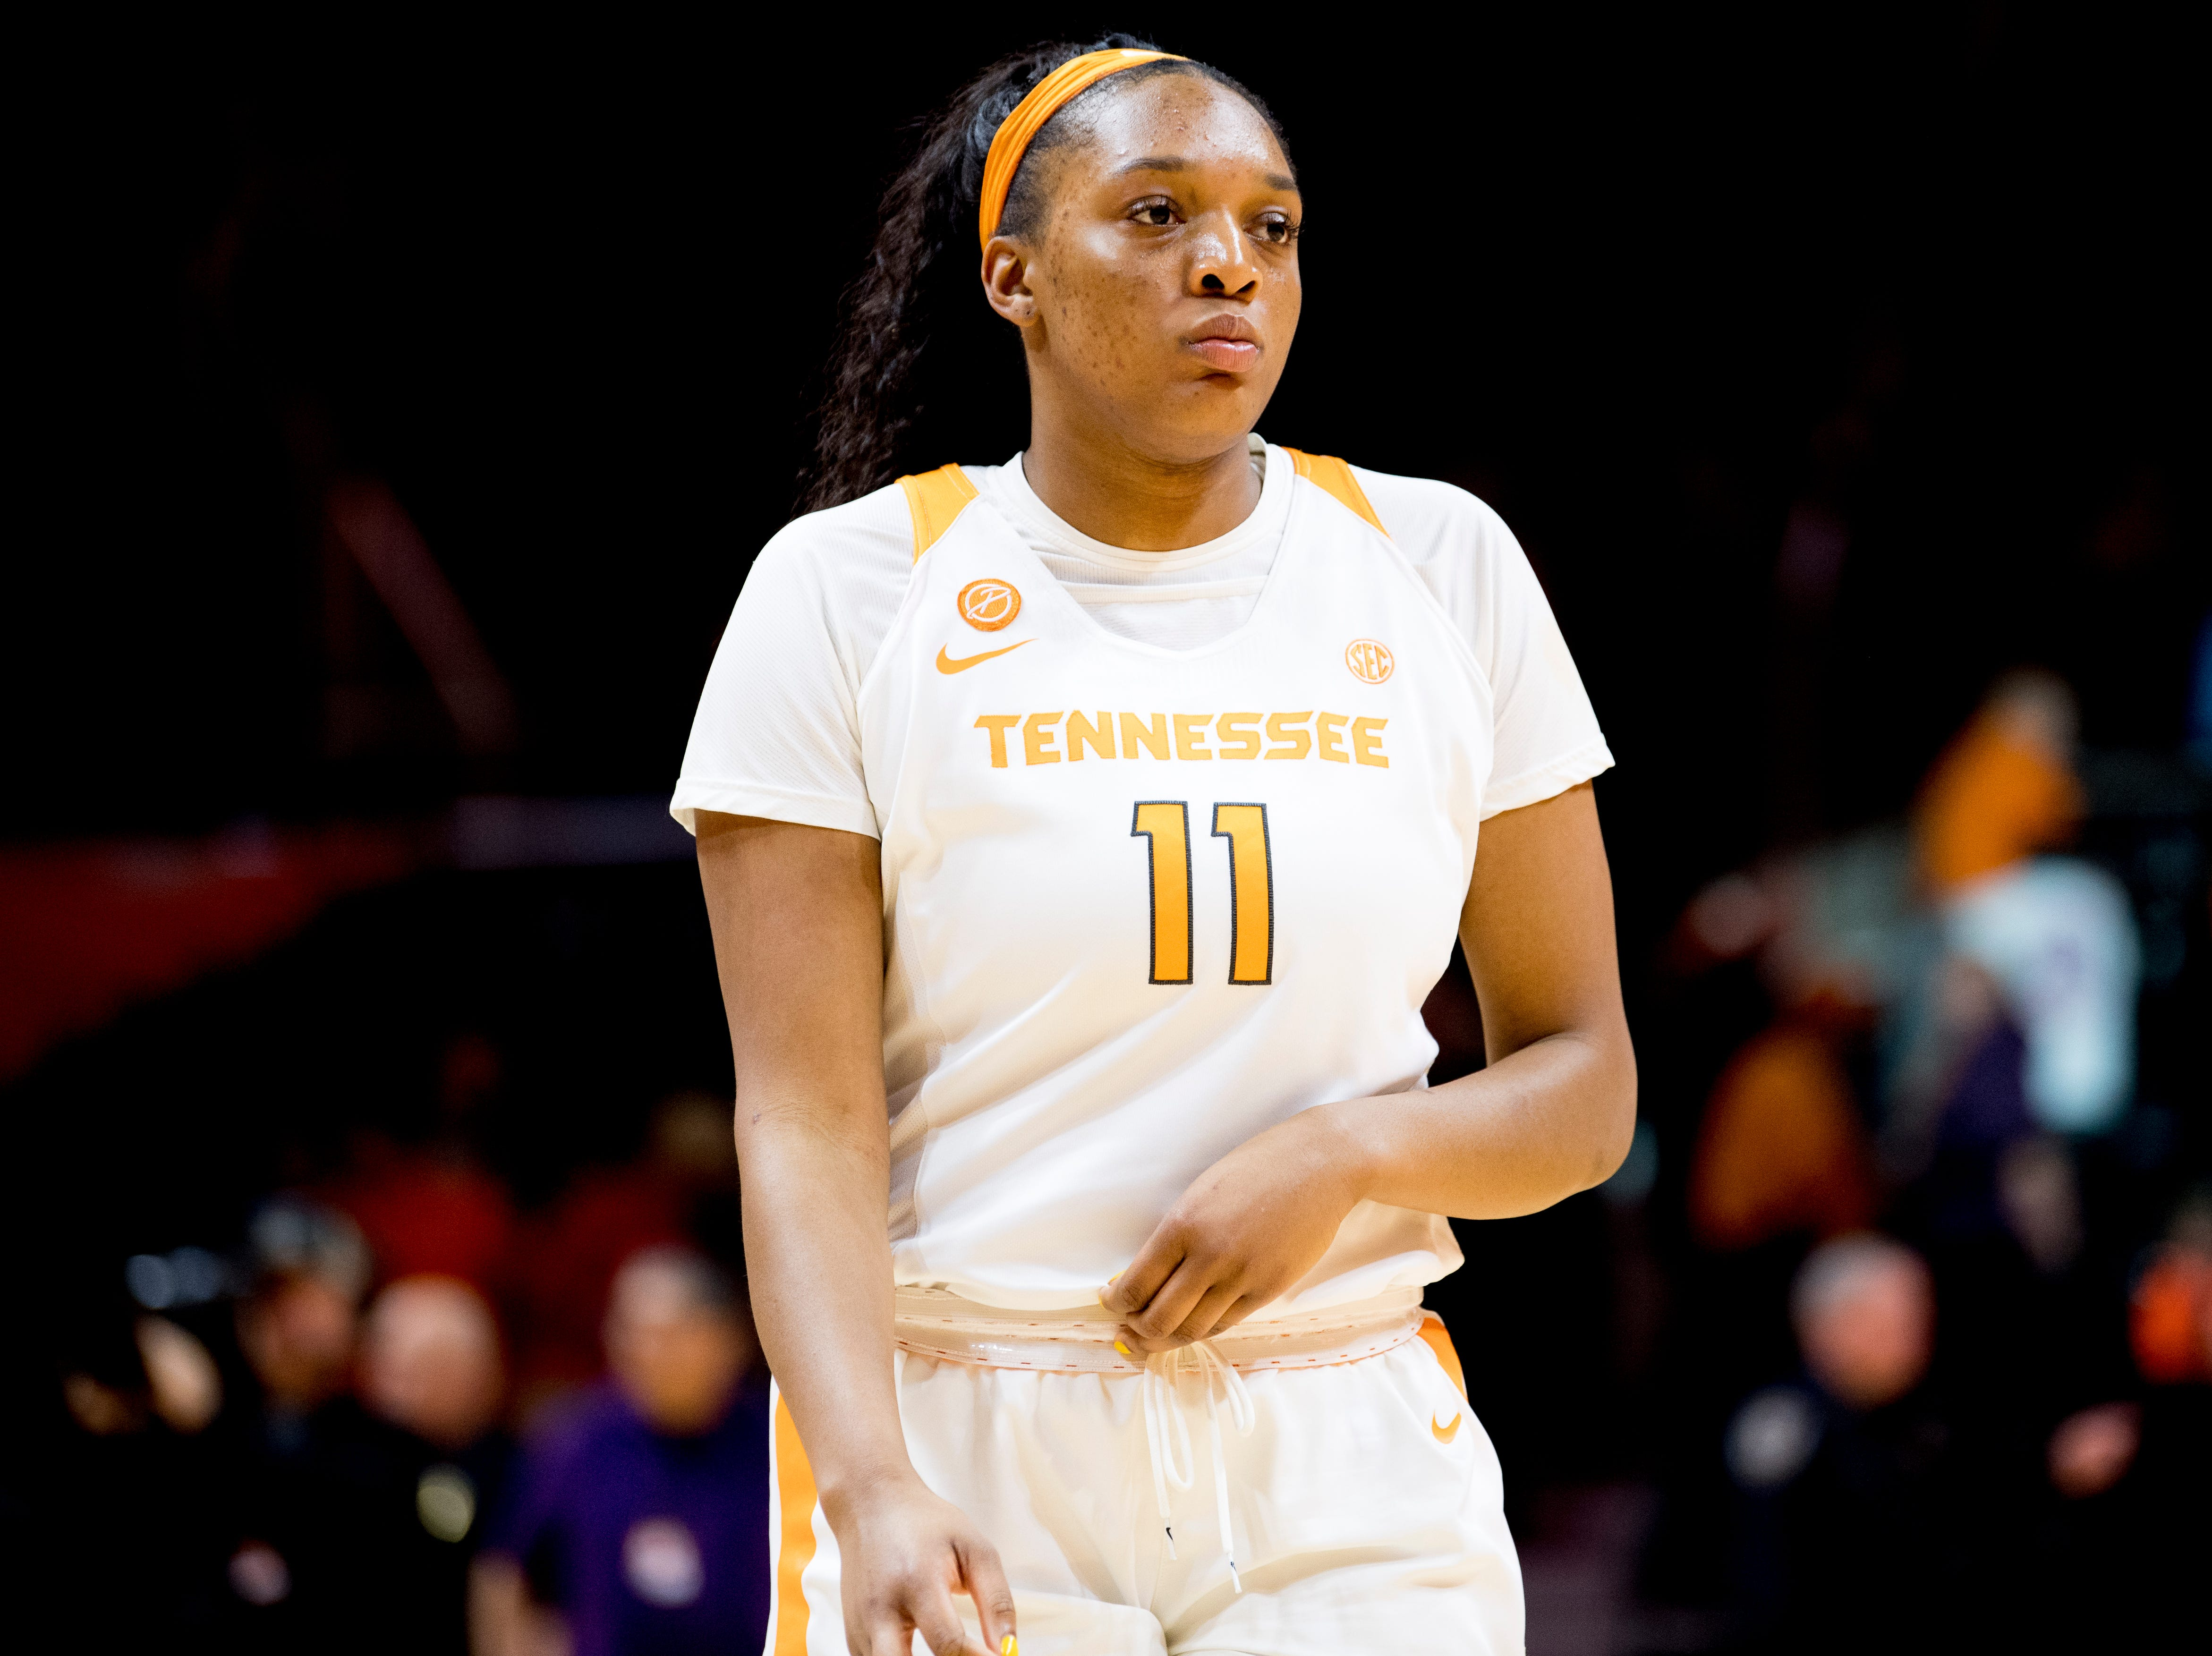 Tennessee center Kasiyahna Kushkituah (11) walks off the court after falling to Arkansas 79-80 at Thompson-Boling Arena in Knoxville, Tennessee on Monday, January 21, 2019.